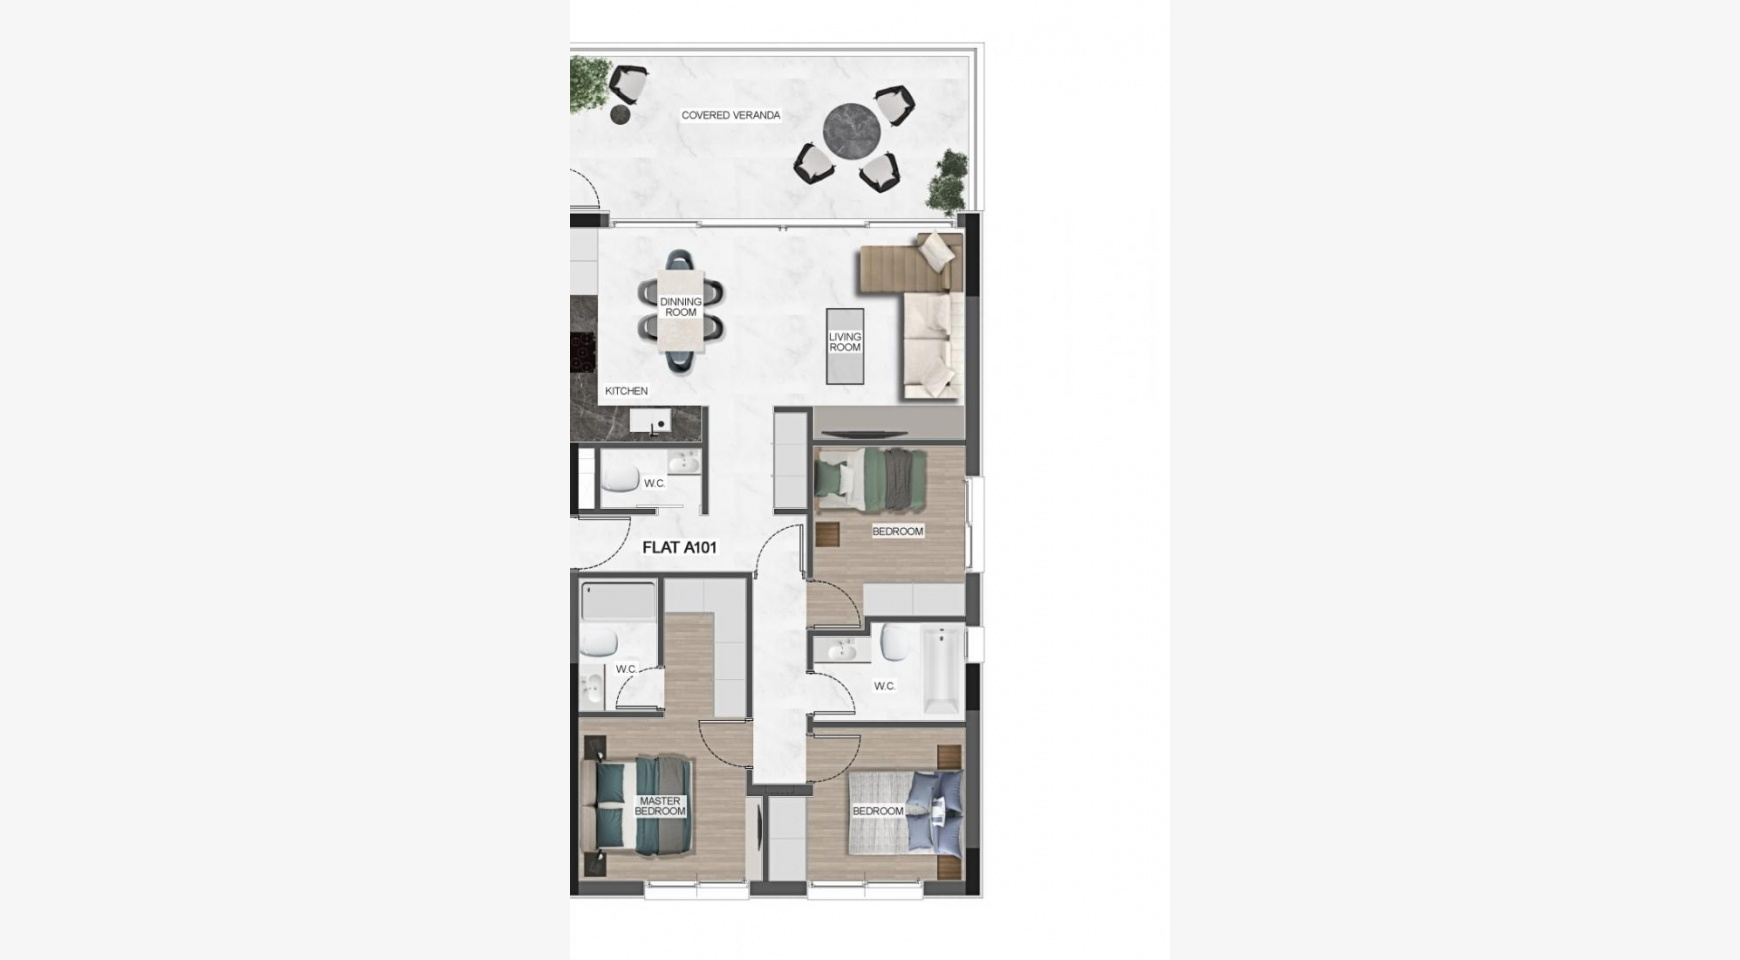 Urban City Residences, Block B. New Spacious 3 Bedroom Apartment 501 in the City Centre - 43